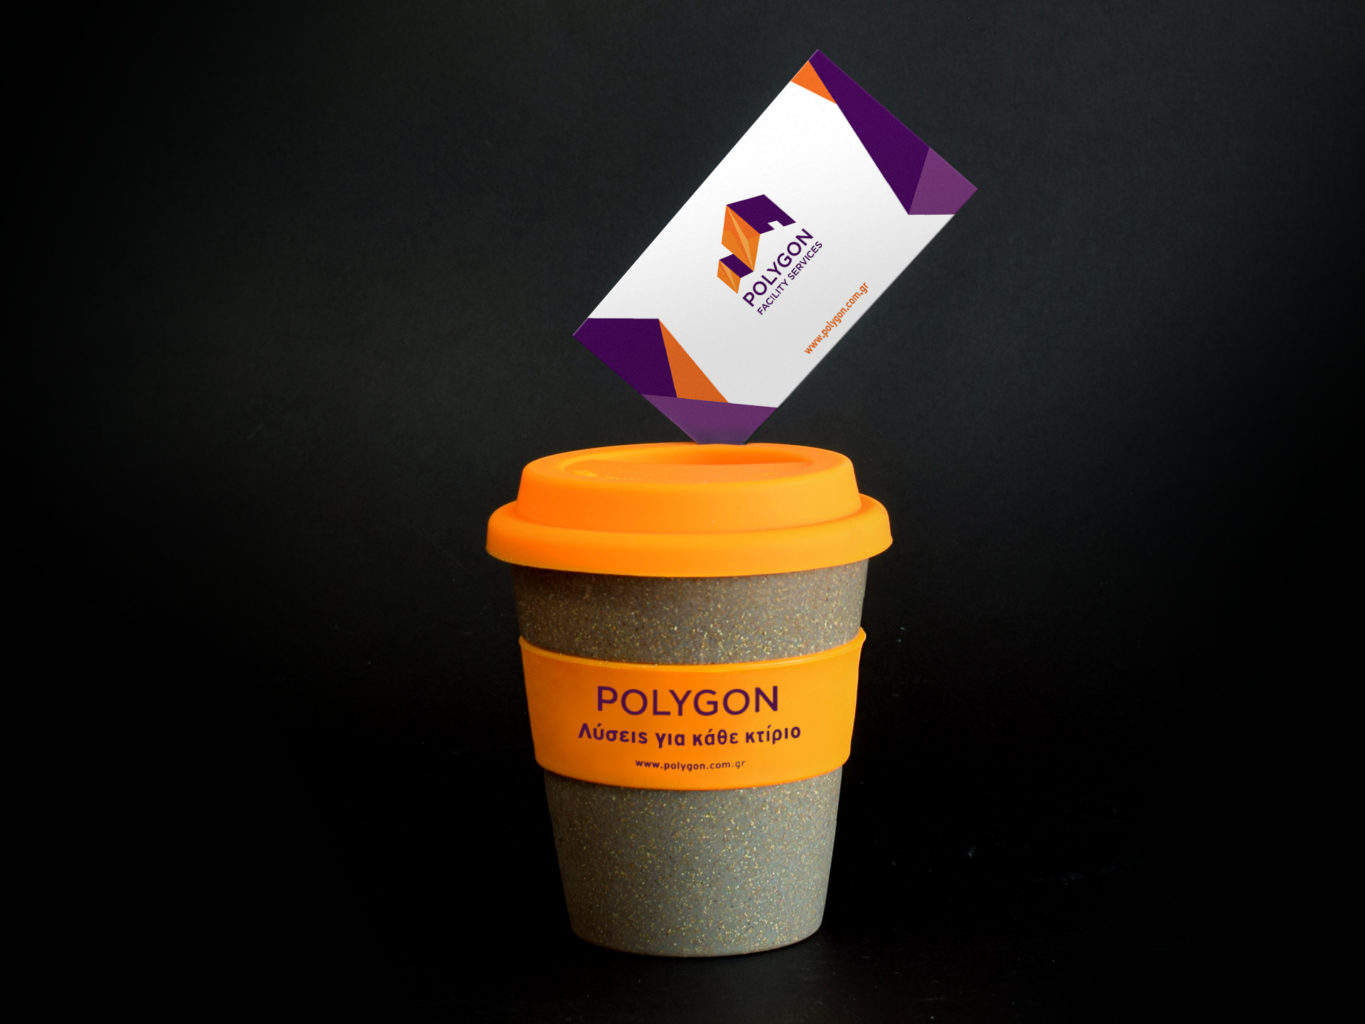 polygon facility services cup and business card with their logo